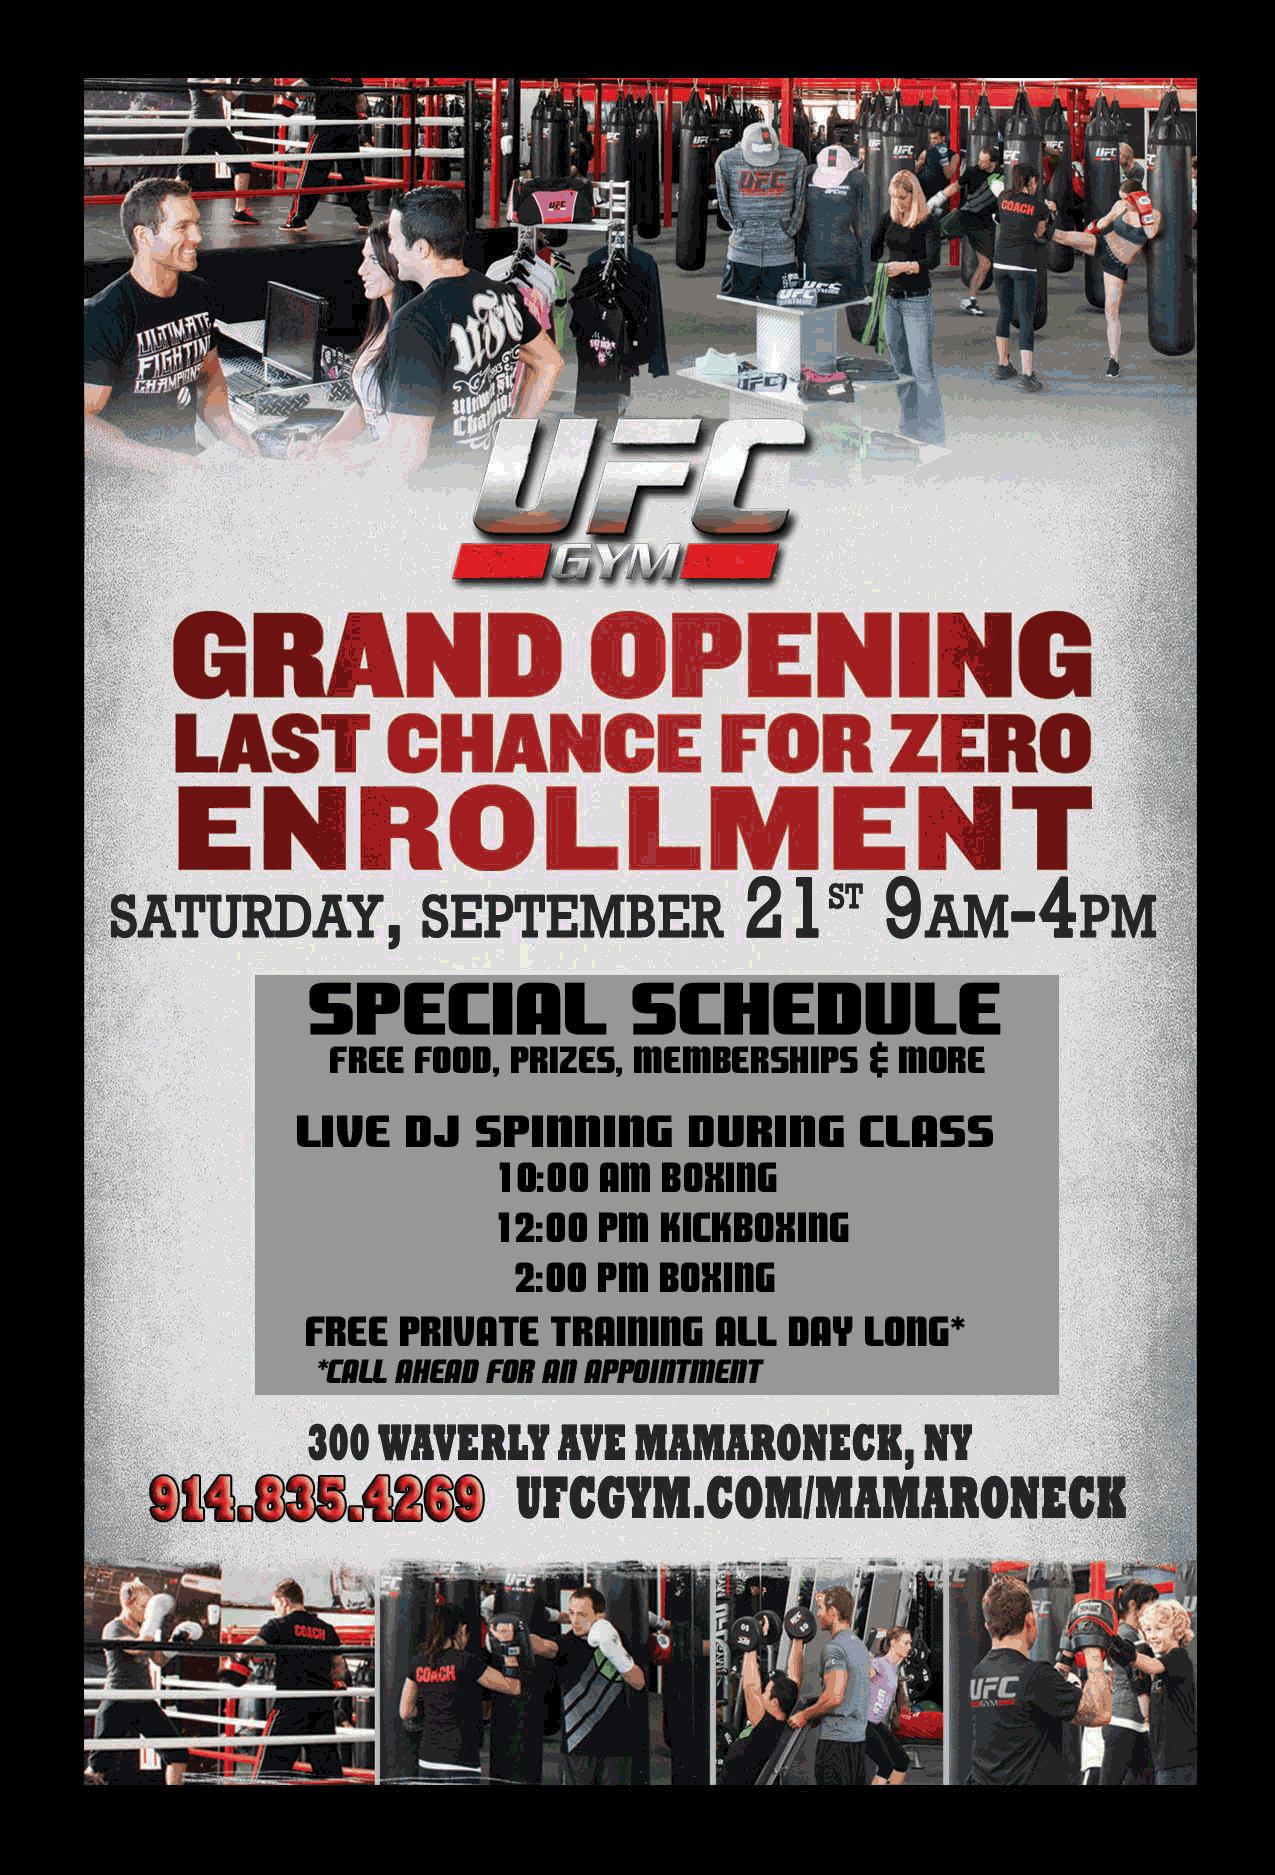 Grand Opening of UFC GYM | Larchmont, NY Patch